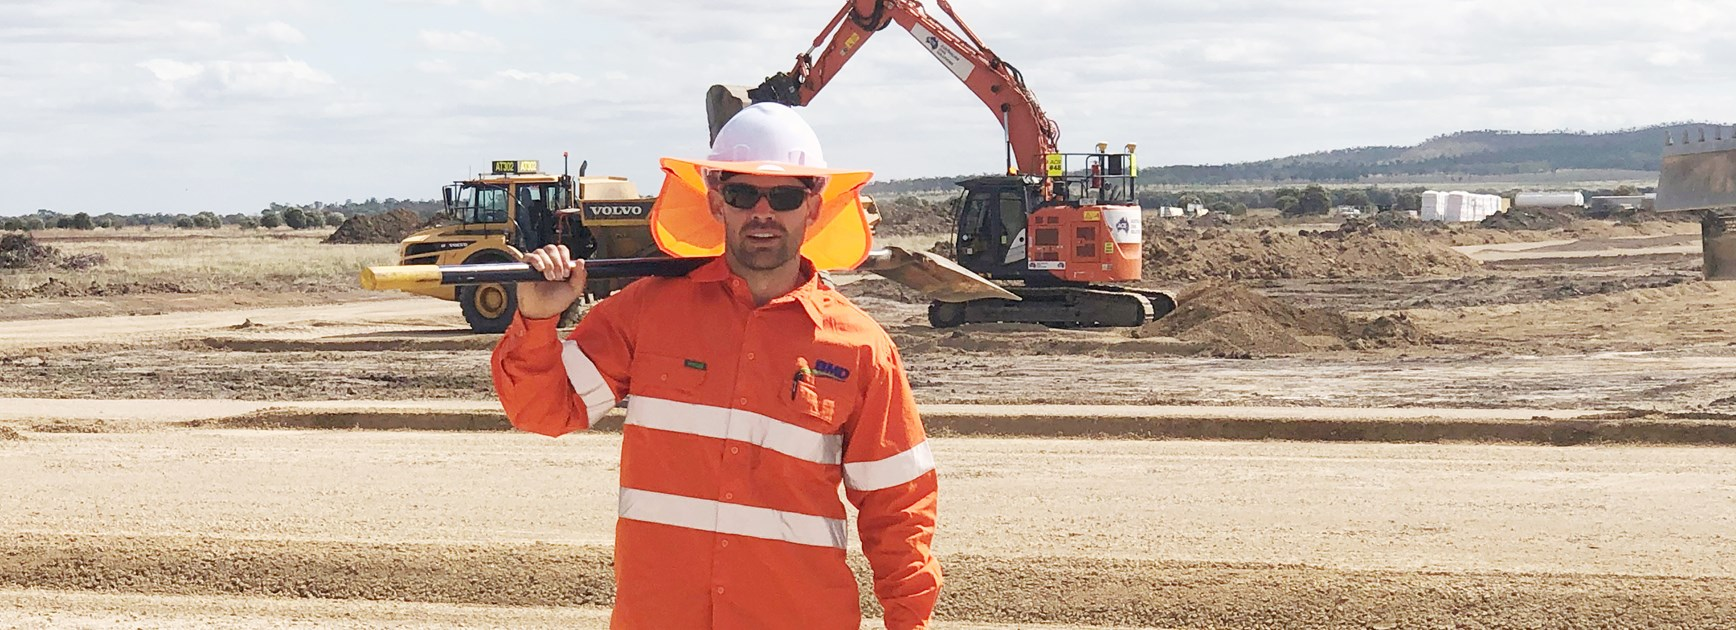 BMD & Adani jobs a lifeline for Cowboys staff